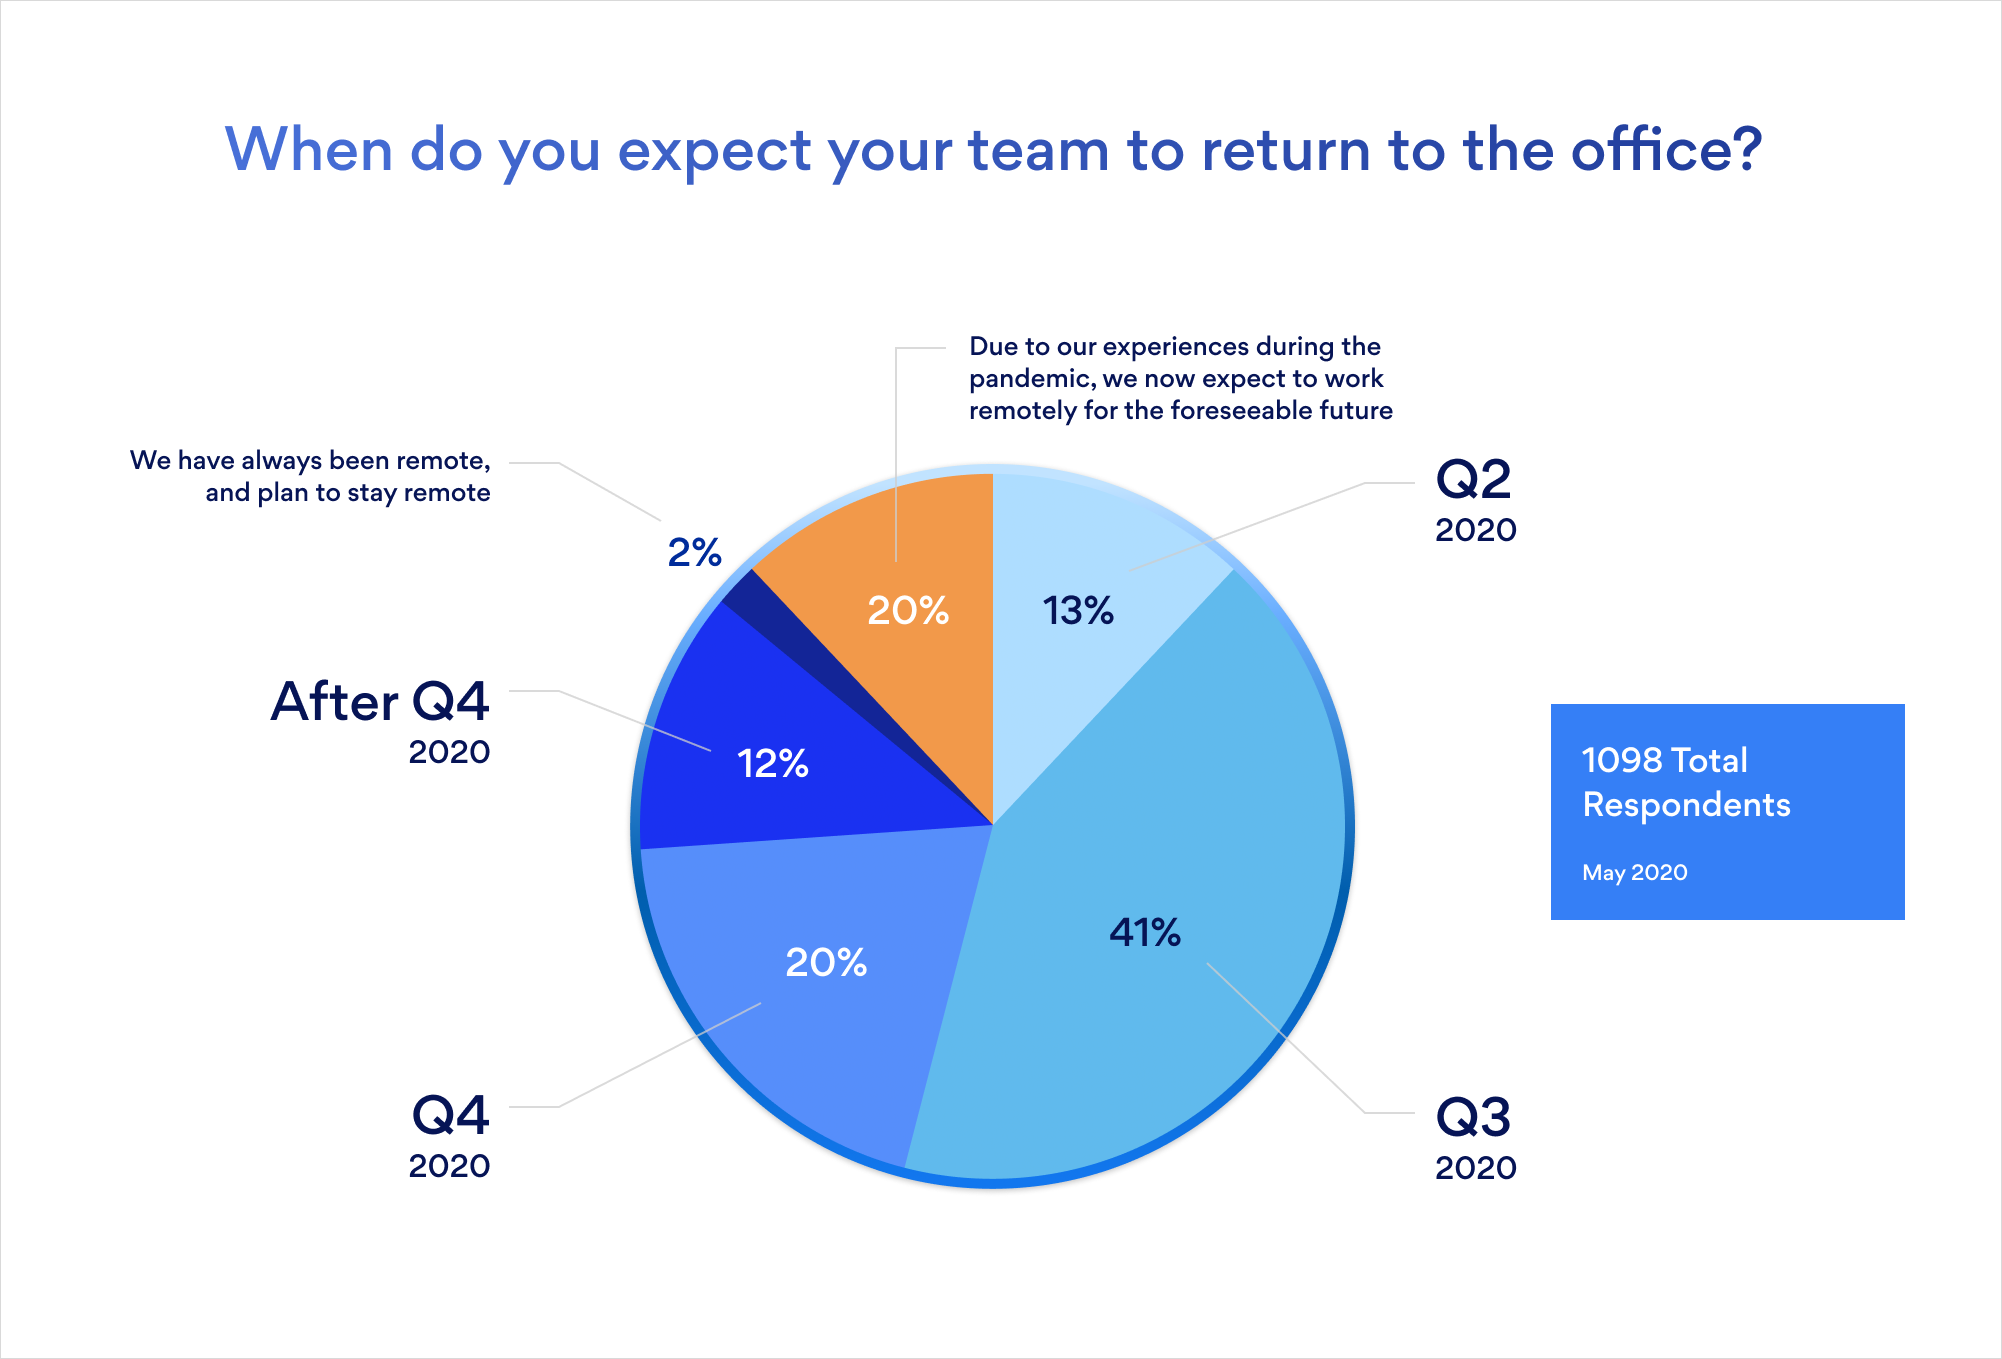 Pie chart diagram asking when do you expect your team to return to the office in 2020.